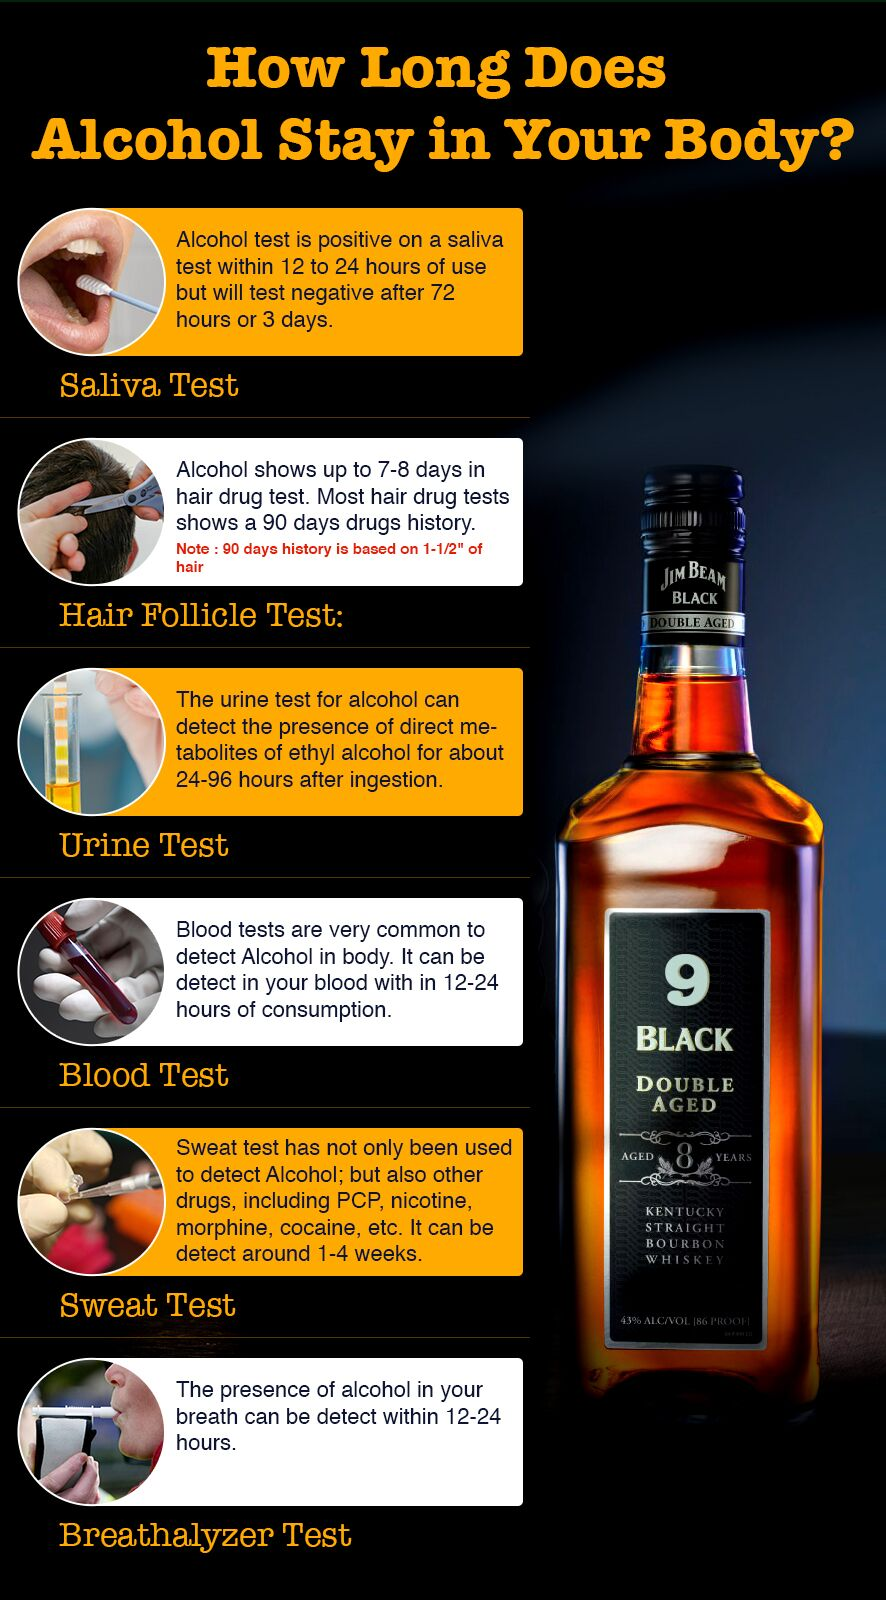 How Long Does Alcohol Stay in Your Body?